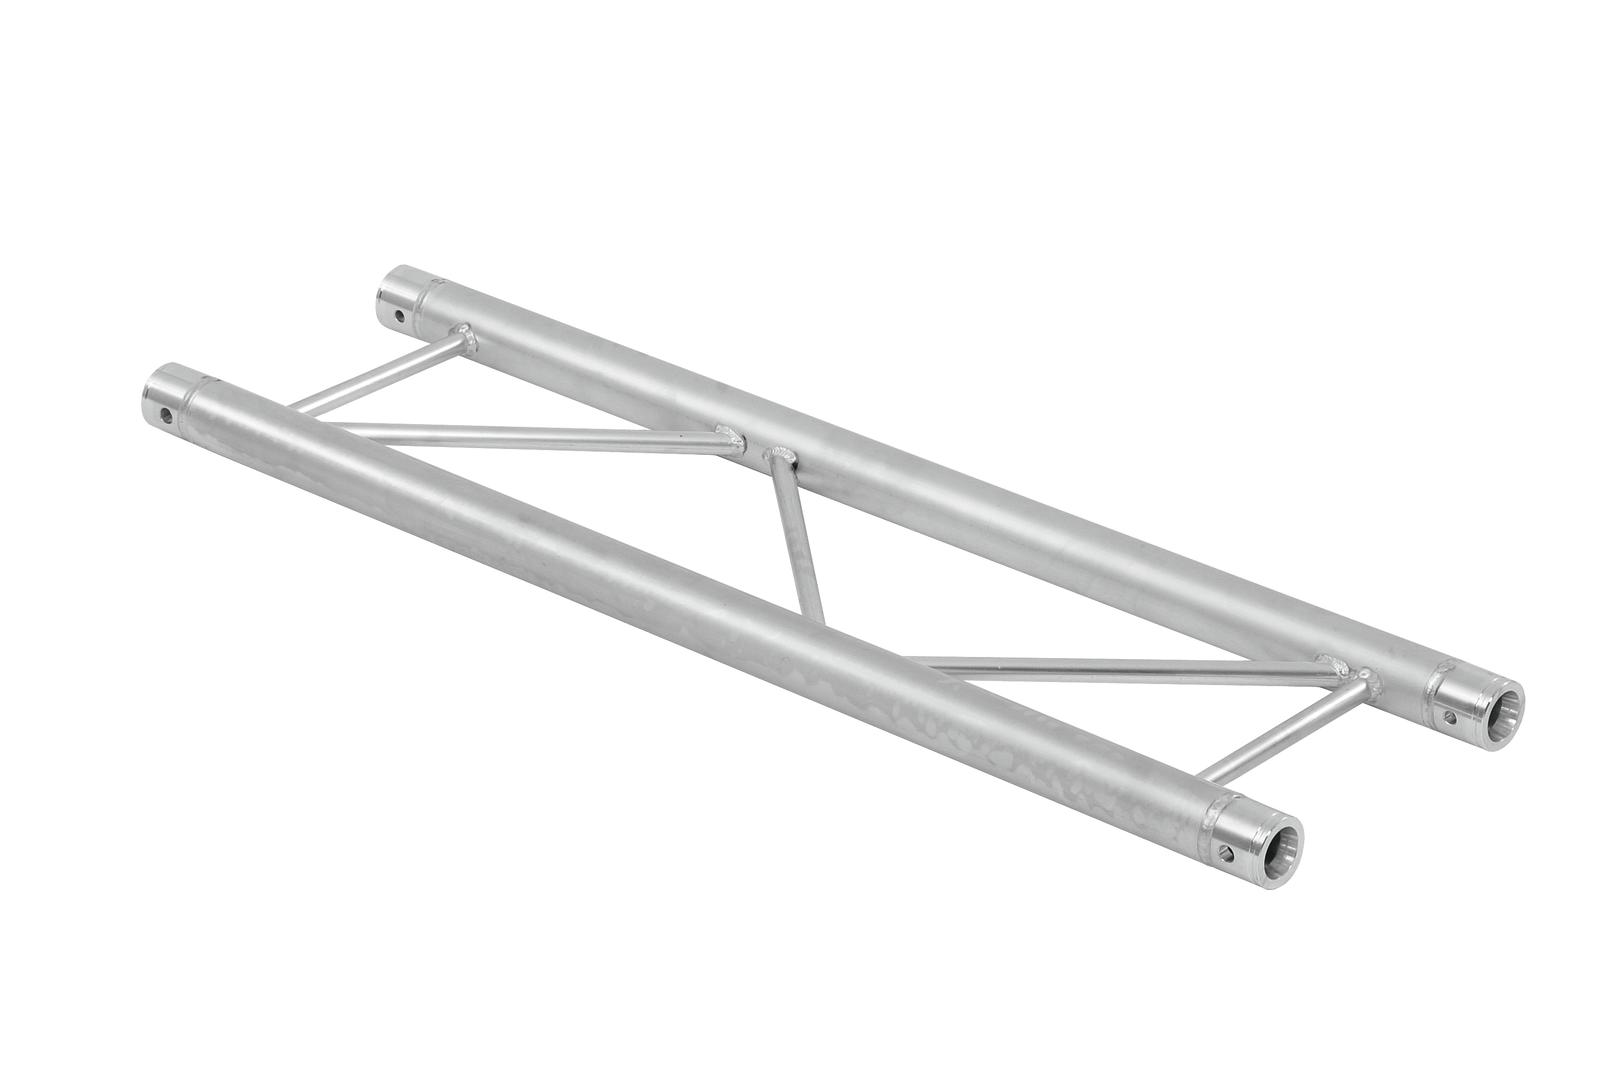 ALUTRUSS BILOCK E-GL22 710 2 vie traverse